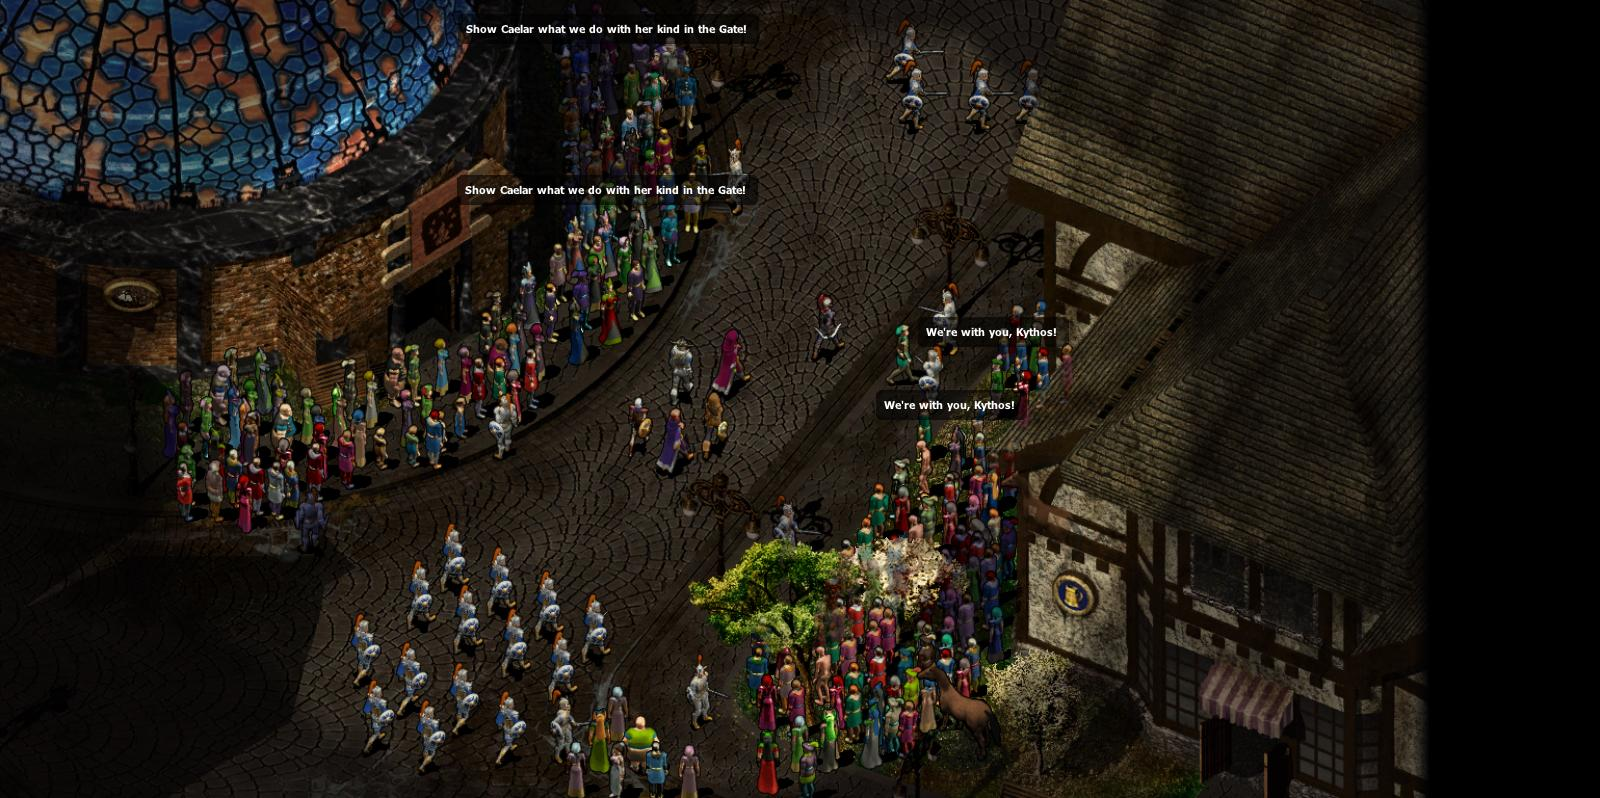 Another change Beamdog has made to the Infinity Engine: It can show many more people now at once.